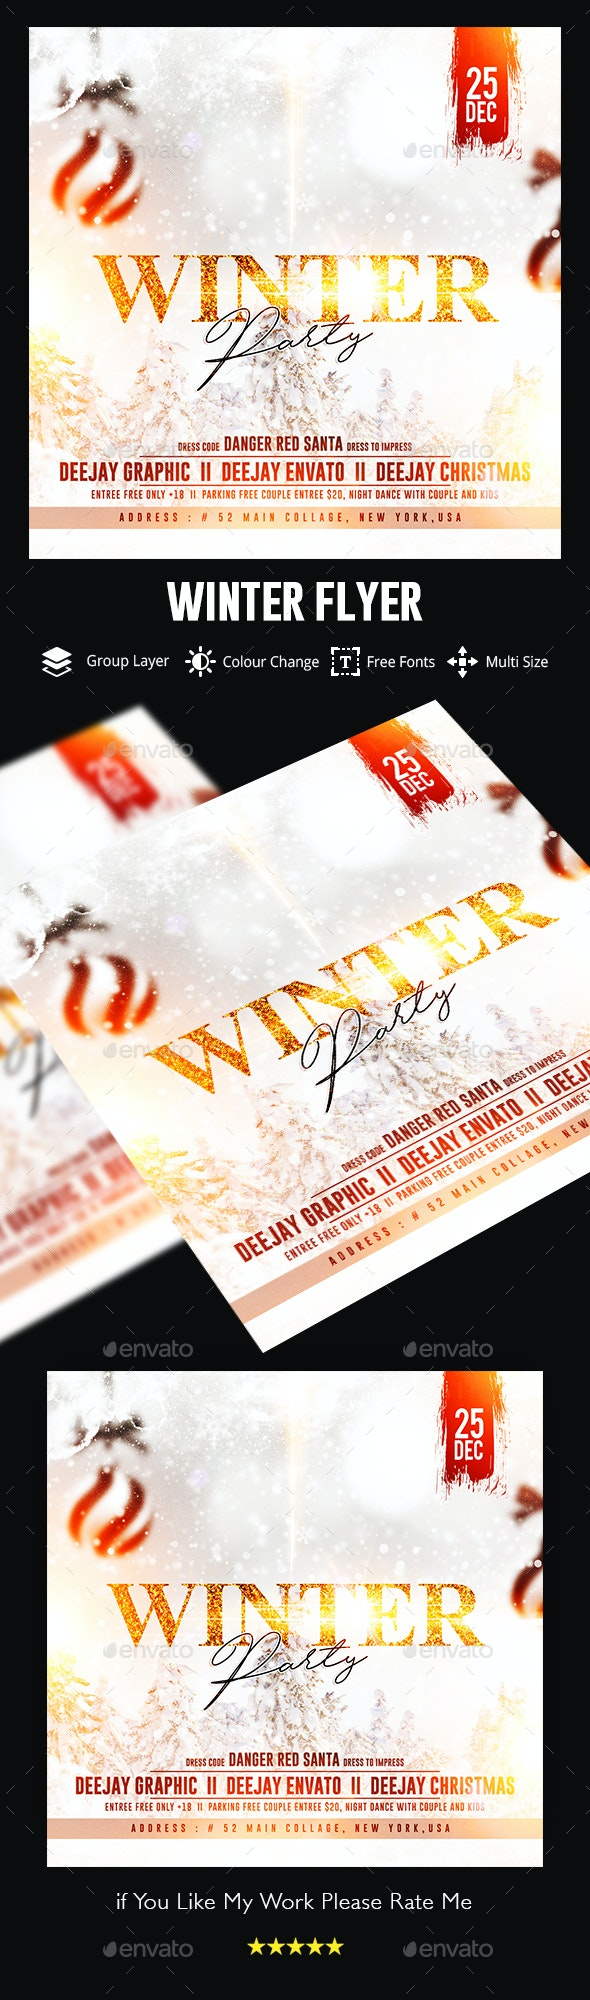 Winter Flyer Template - Clubs & Parties Events